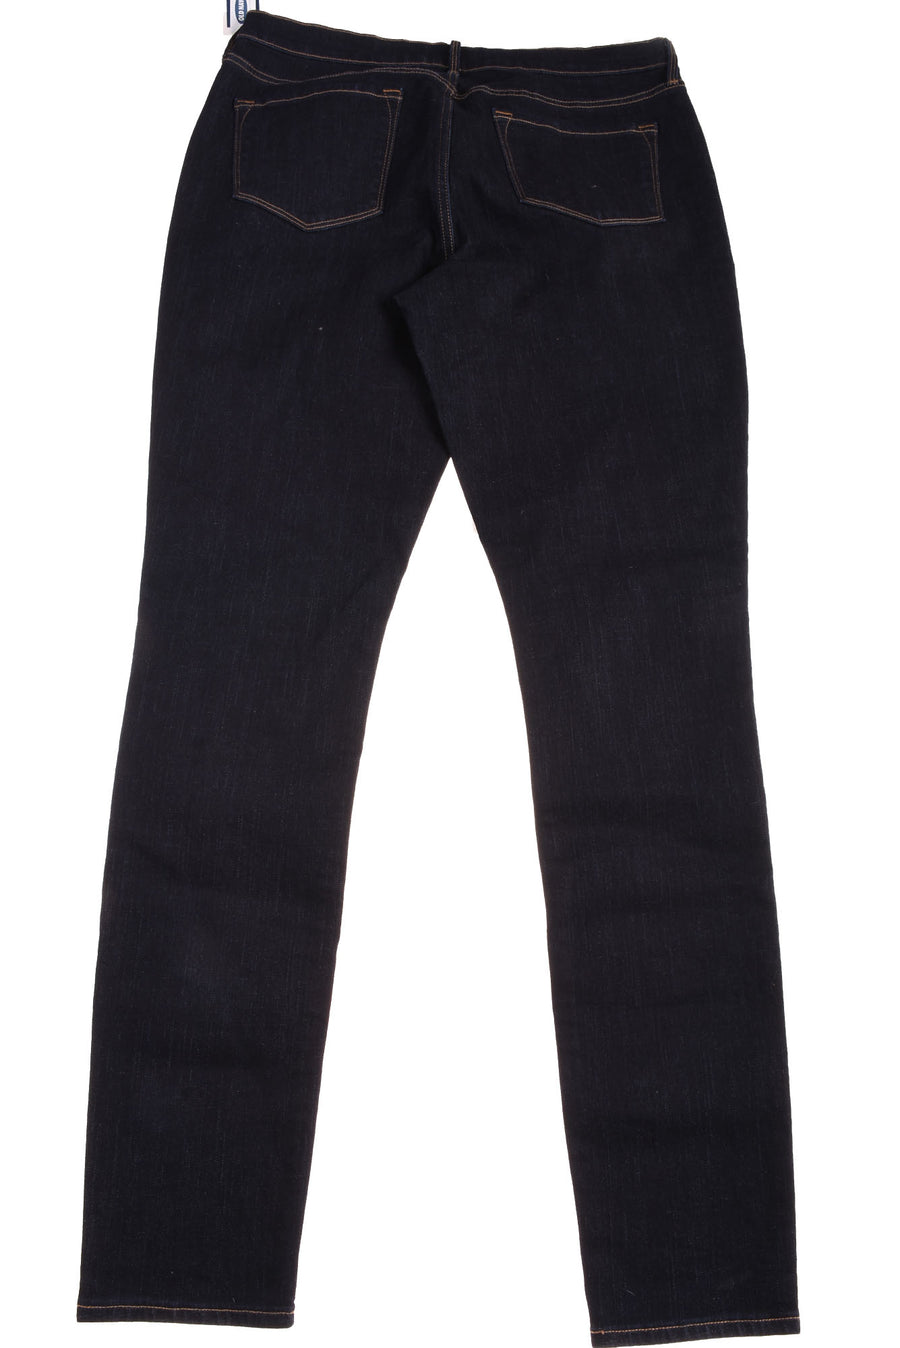 NEW Old Navy Women's Jean's 14 Dark Blue